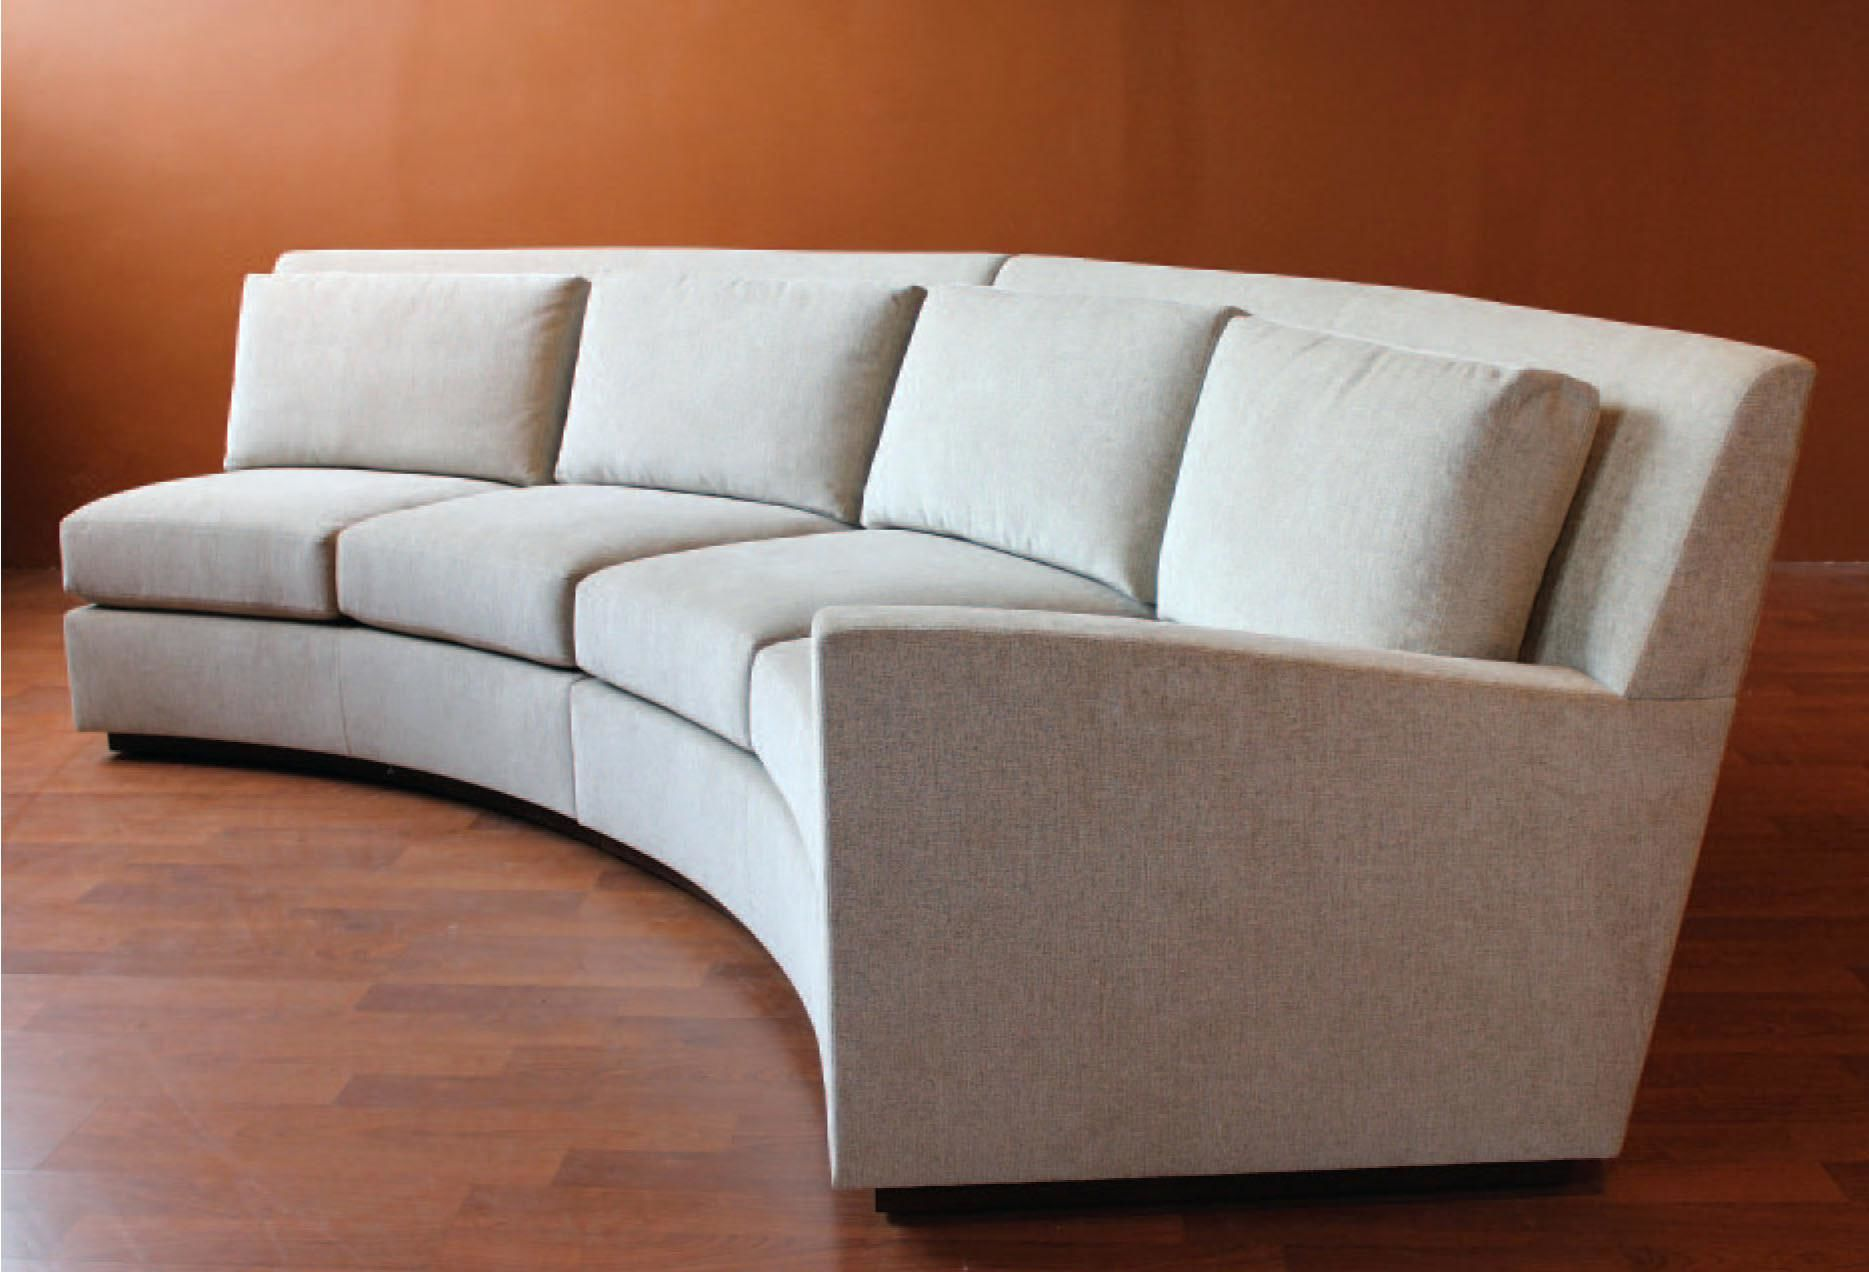 lovely sofa & loveseat set photo-Lovely sofa & Loveseat Set Ideas